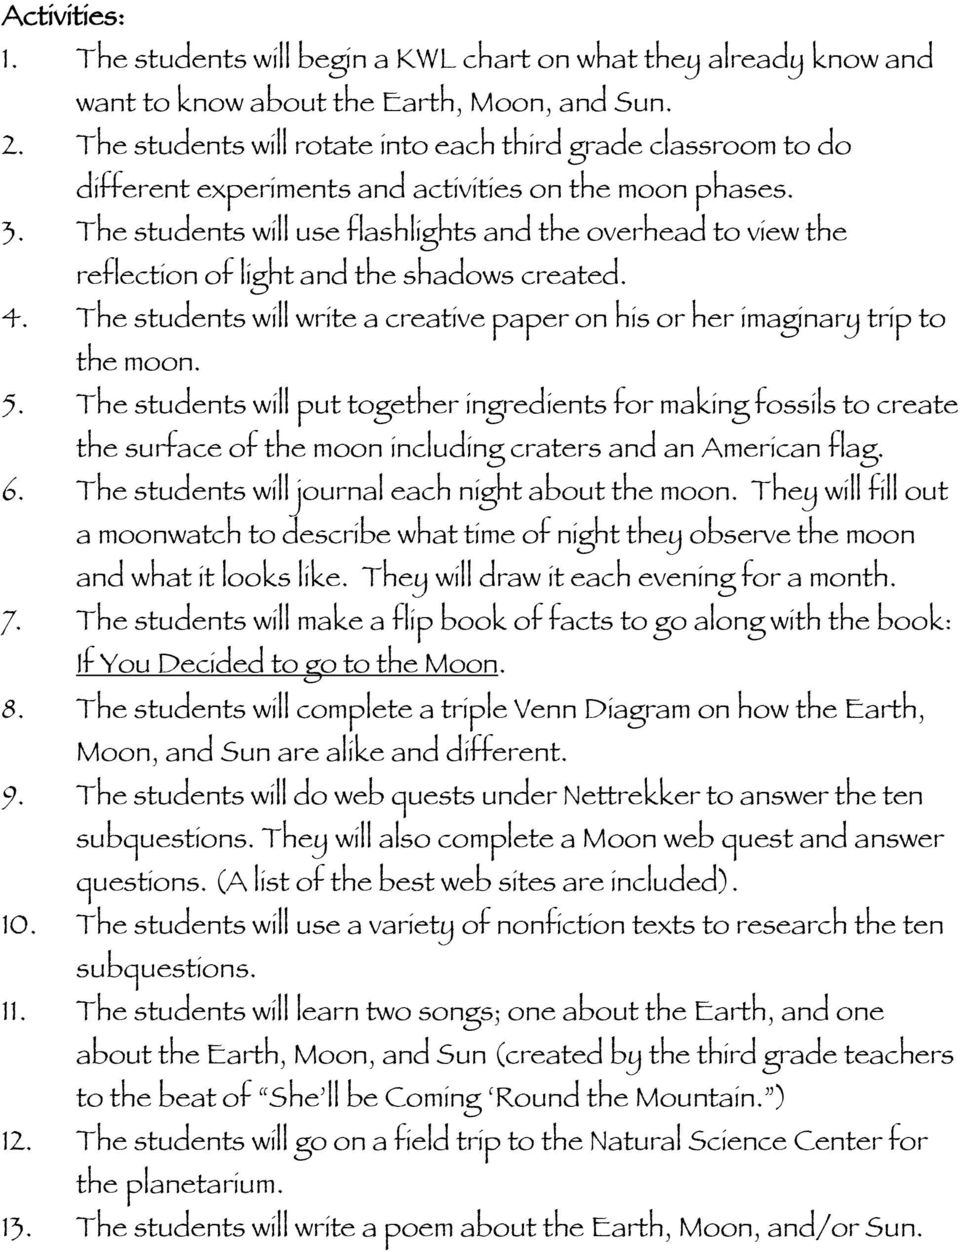 The students will use flashlights and the overhead to view the reflection of light and the shadows created. 4. The students will write a creative paper on his or her imaginary trip to the moon. 5.